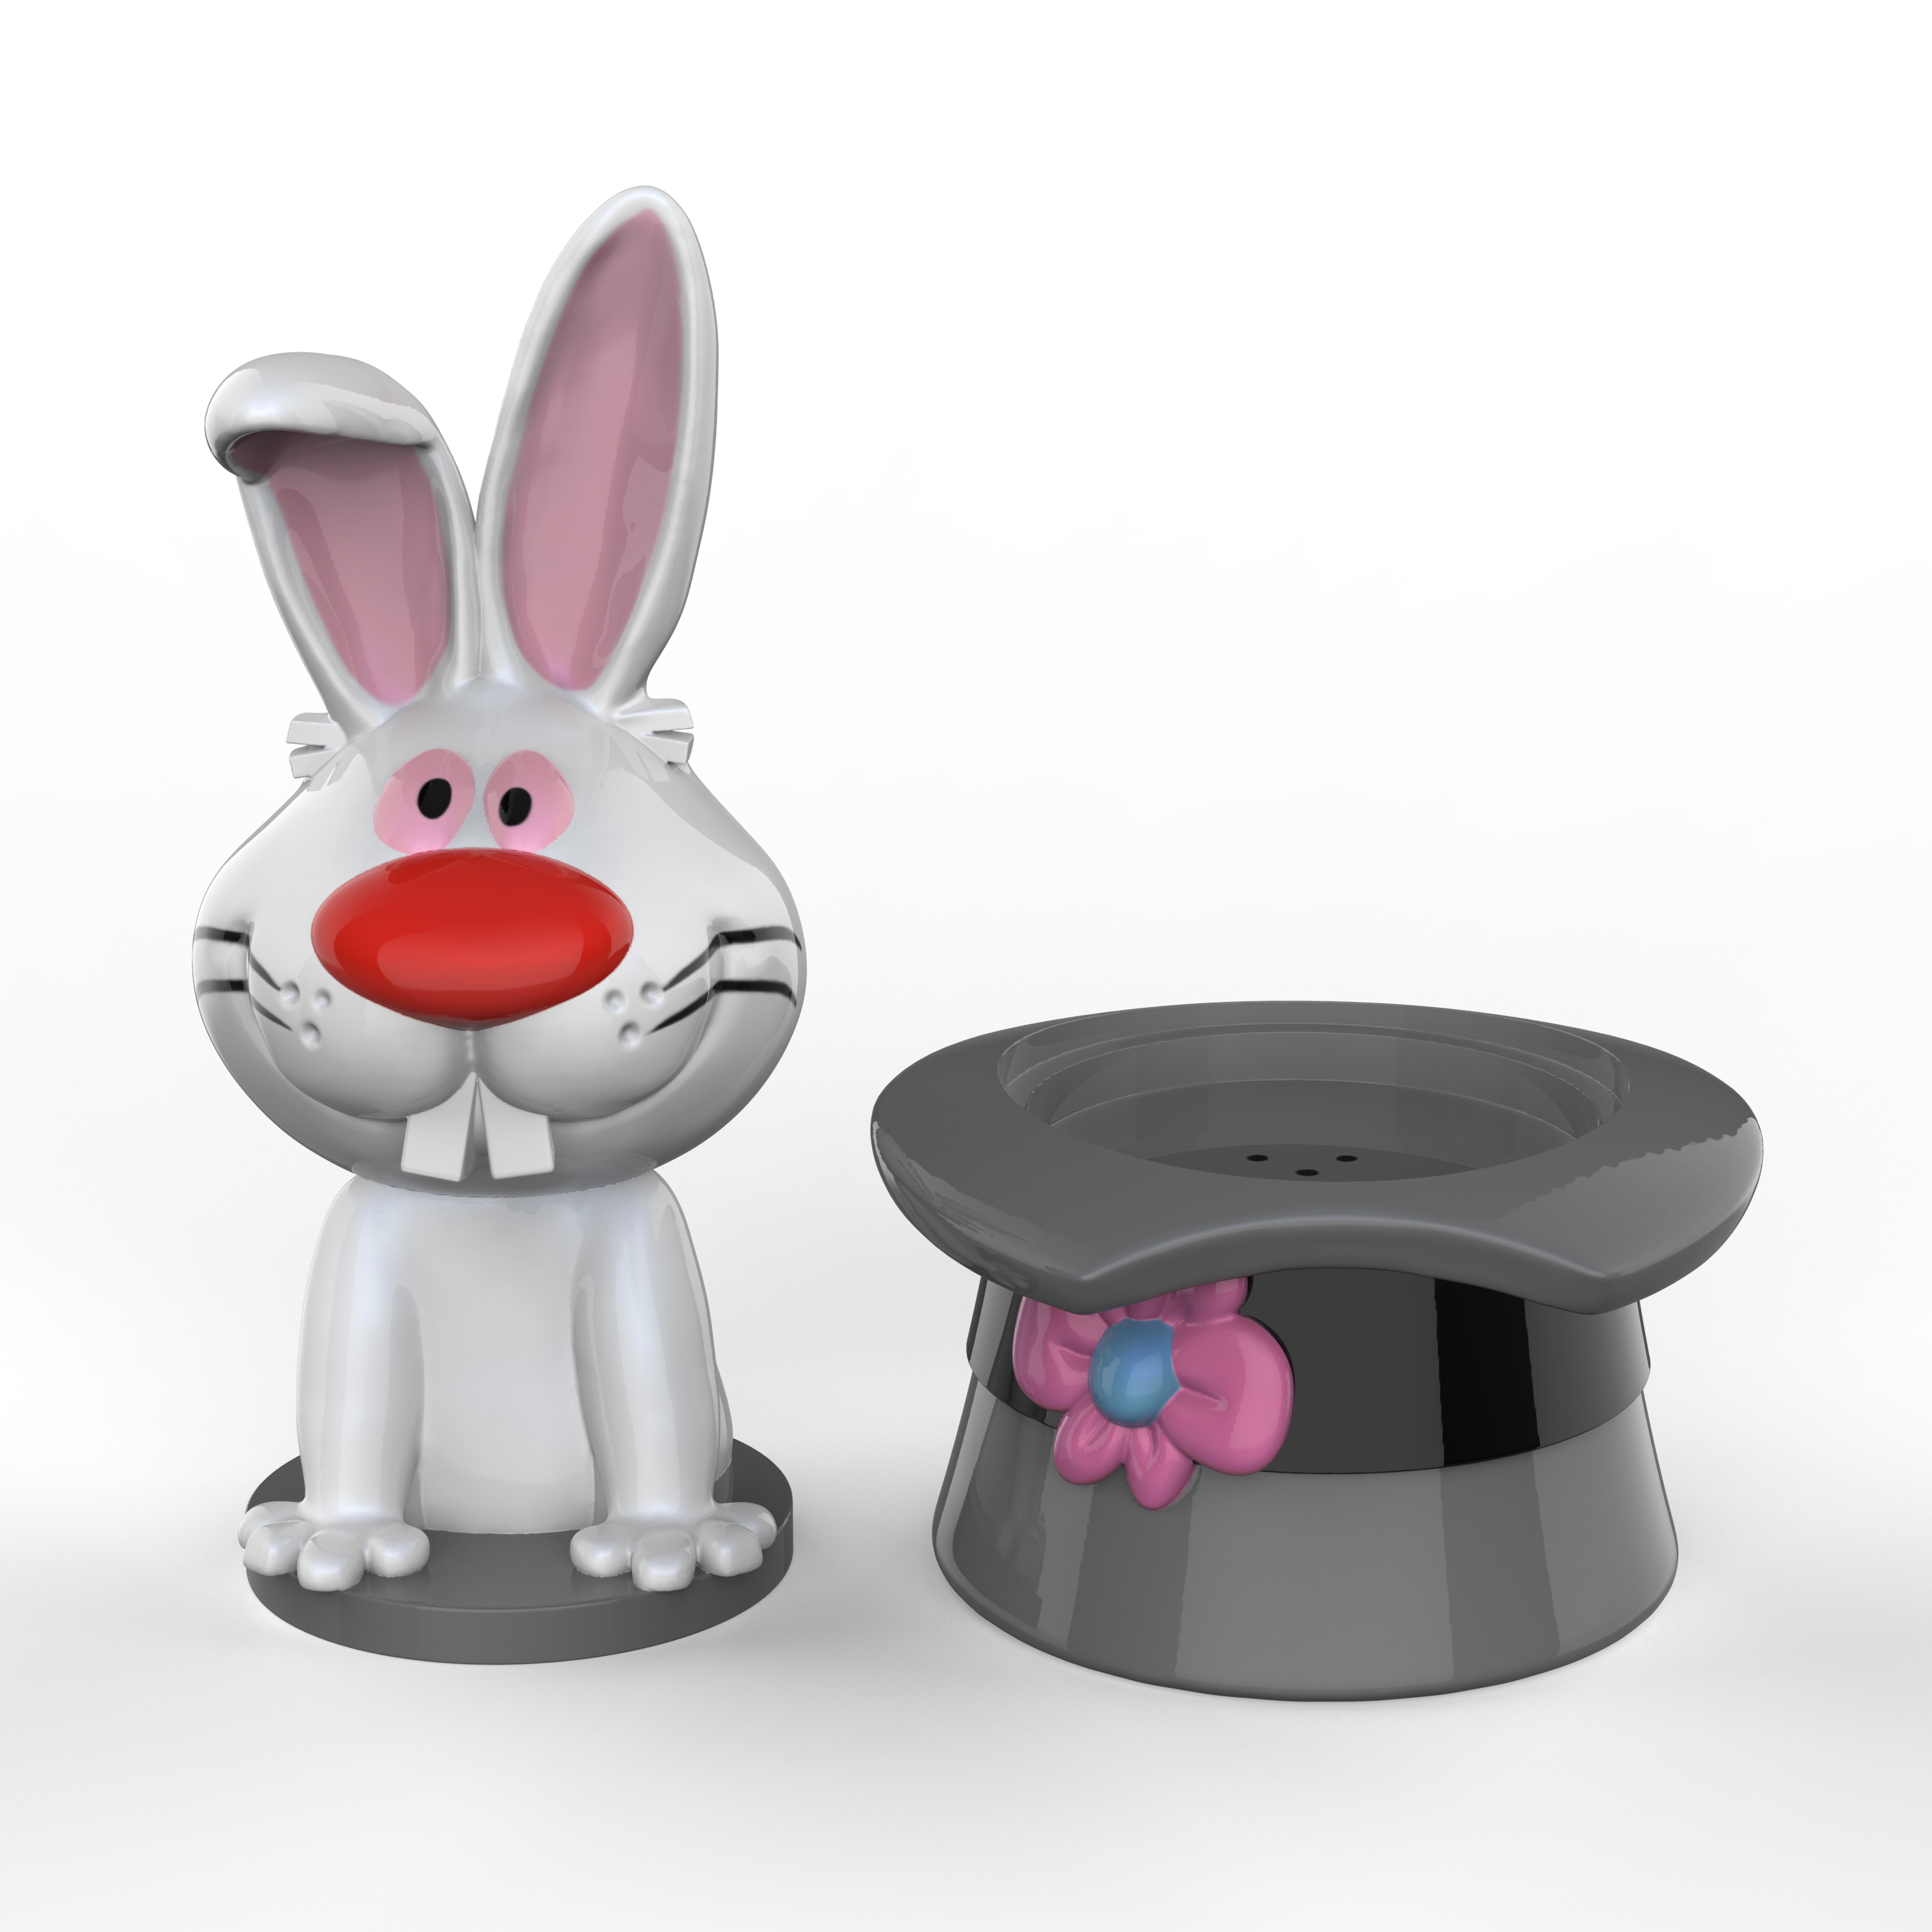 Frosty the Snowman Salt and Pepper Shaker Set, Top Hat & Bunny, 2-piece set slideshow image 5